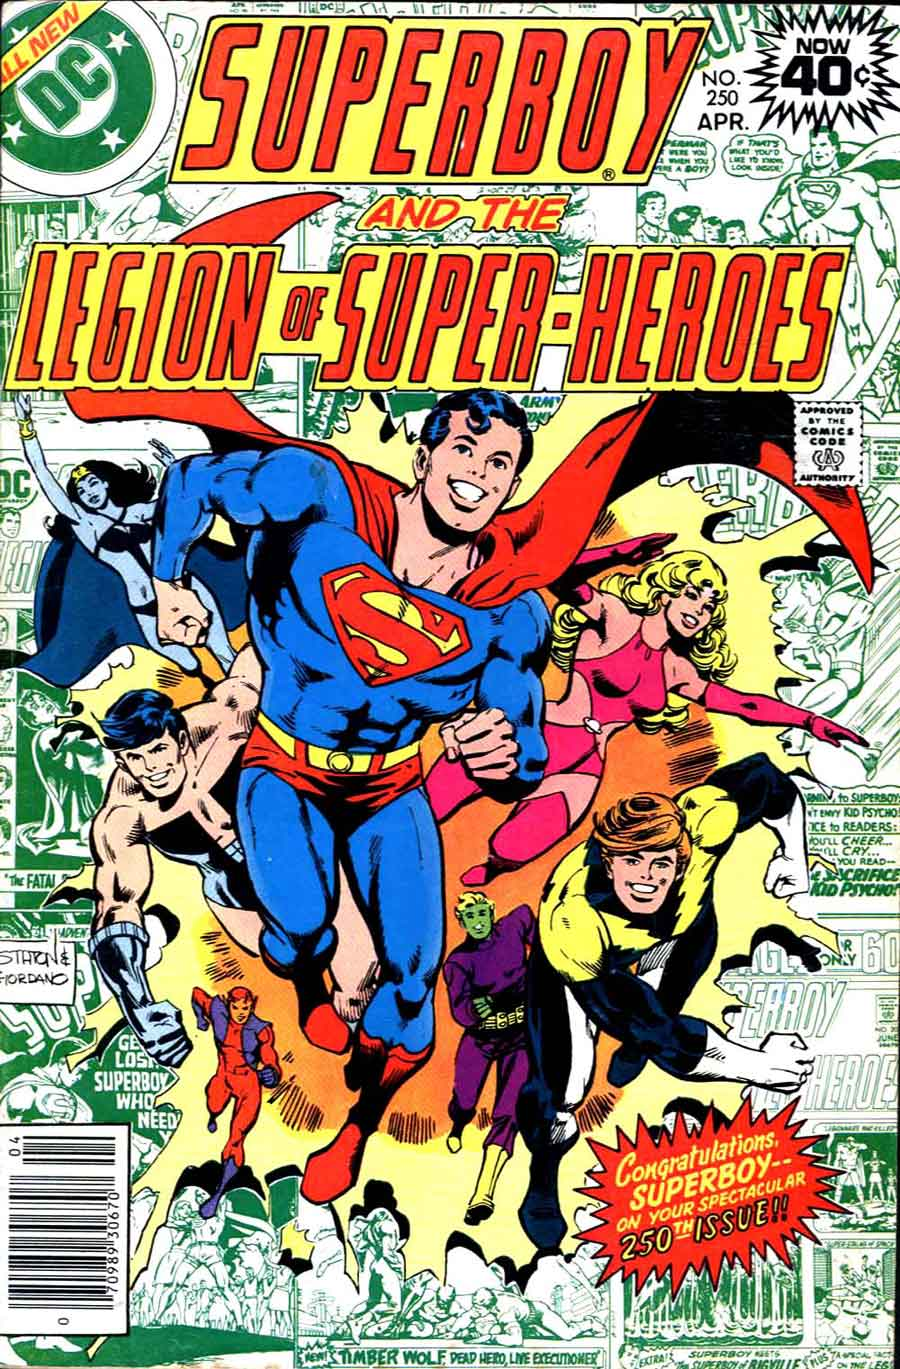 Can Guess Celebrity Terrible Portraits moreover Eye Drawing 504238609 besides Big River likewise Superboy 250 Jim Starlin Art Cover moreover 483996291178214641. on names of pencil artists